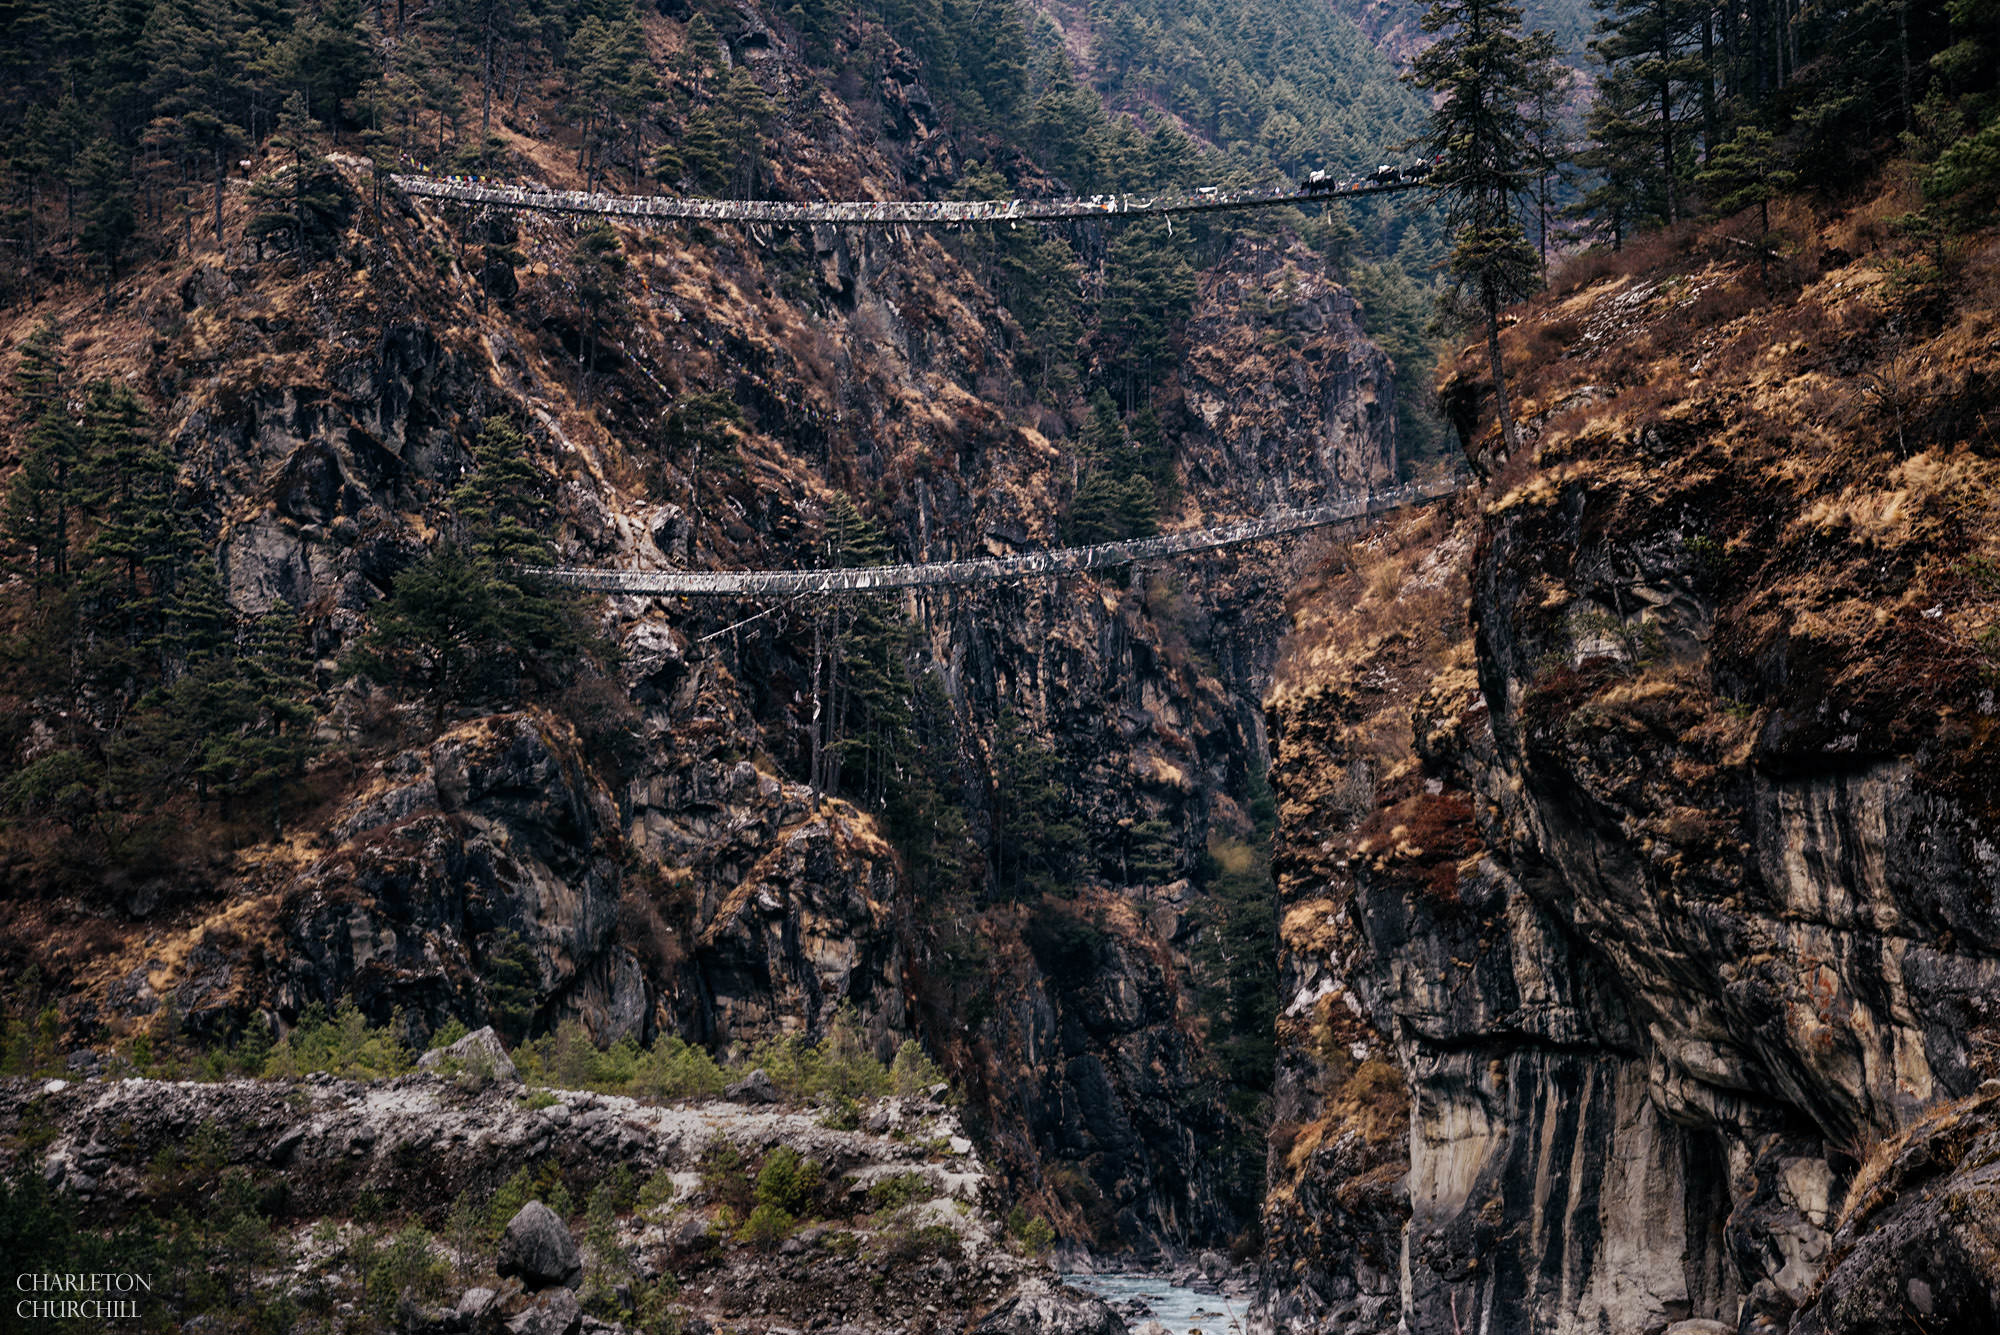 dangerous bridges to namche bazar